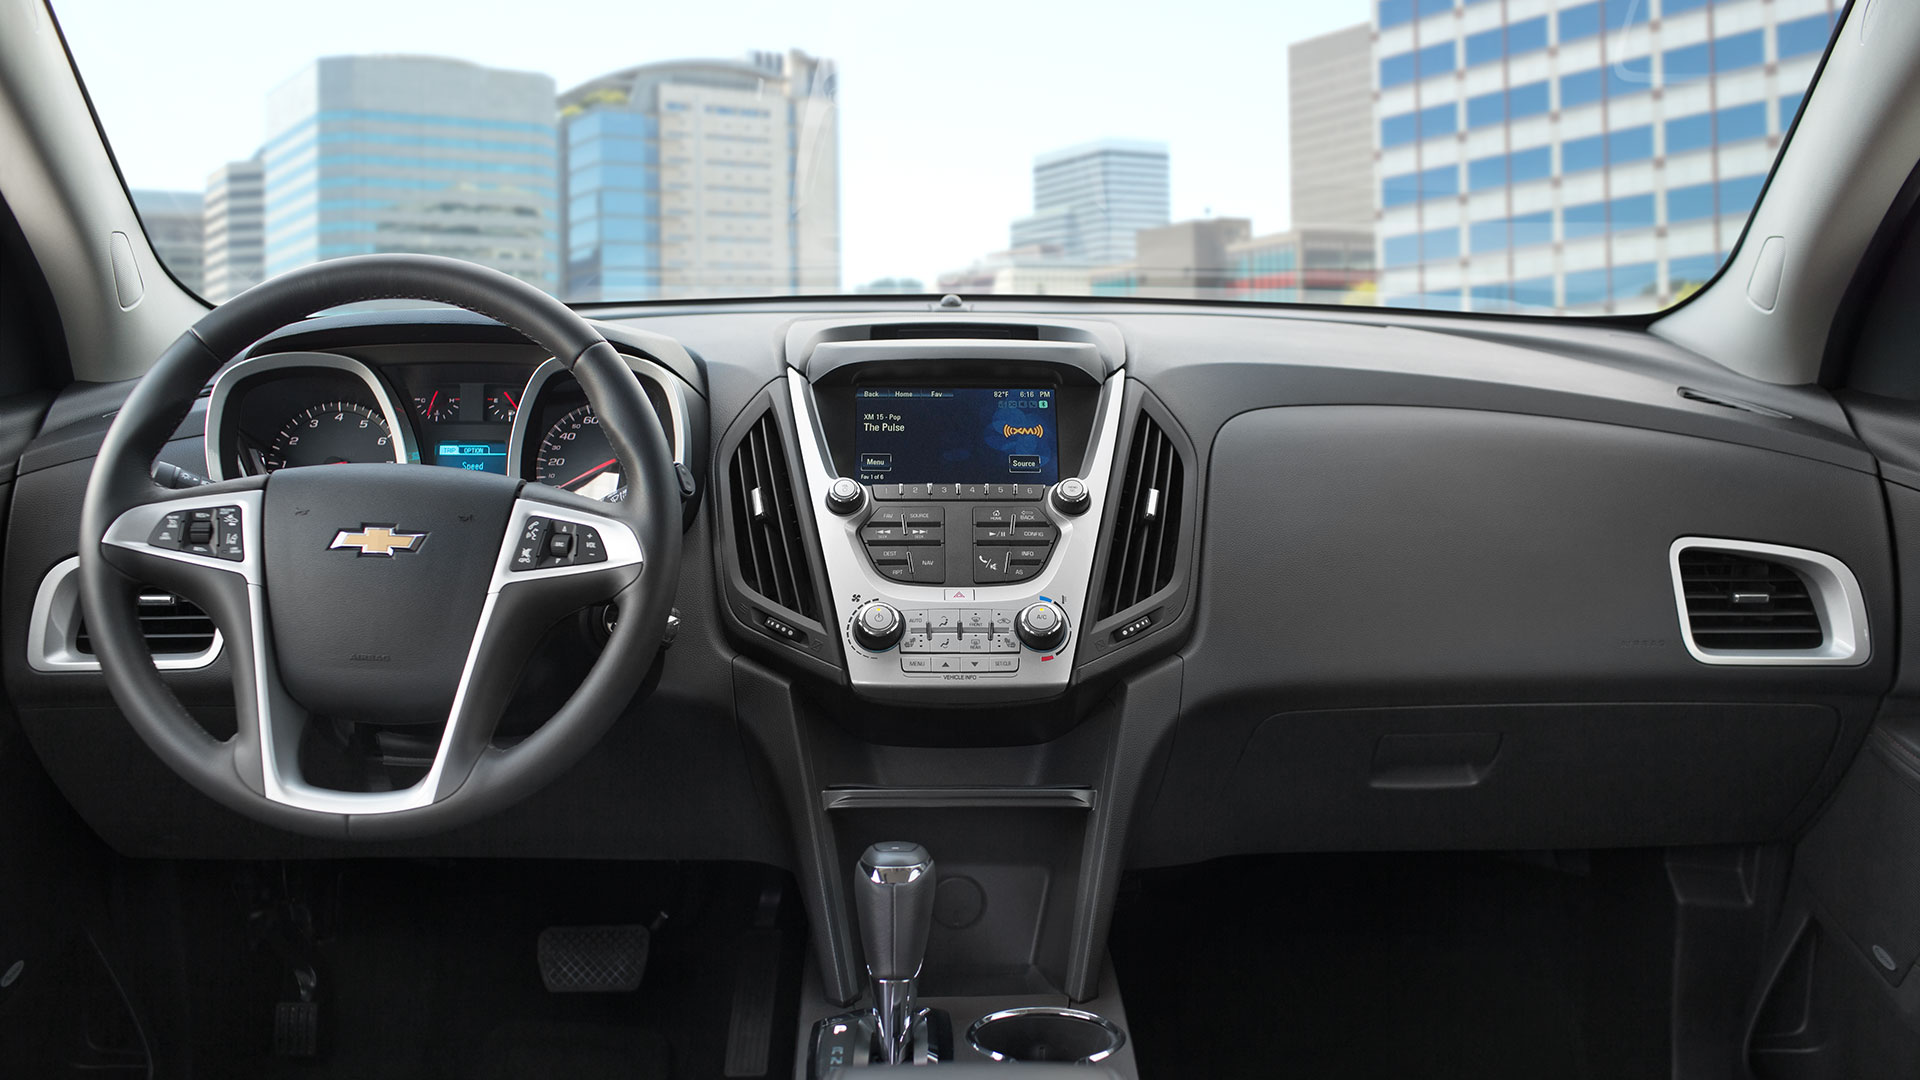 Interior of the 2017 Chevrolet Equinox